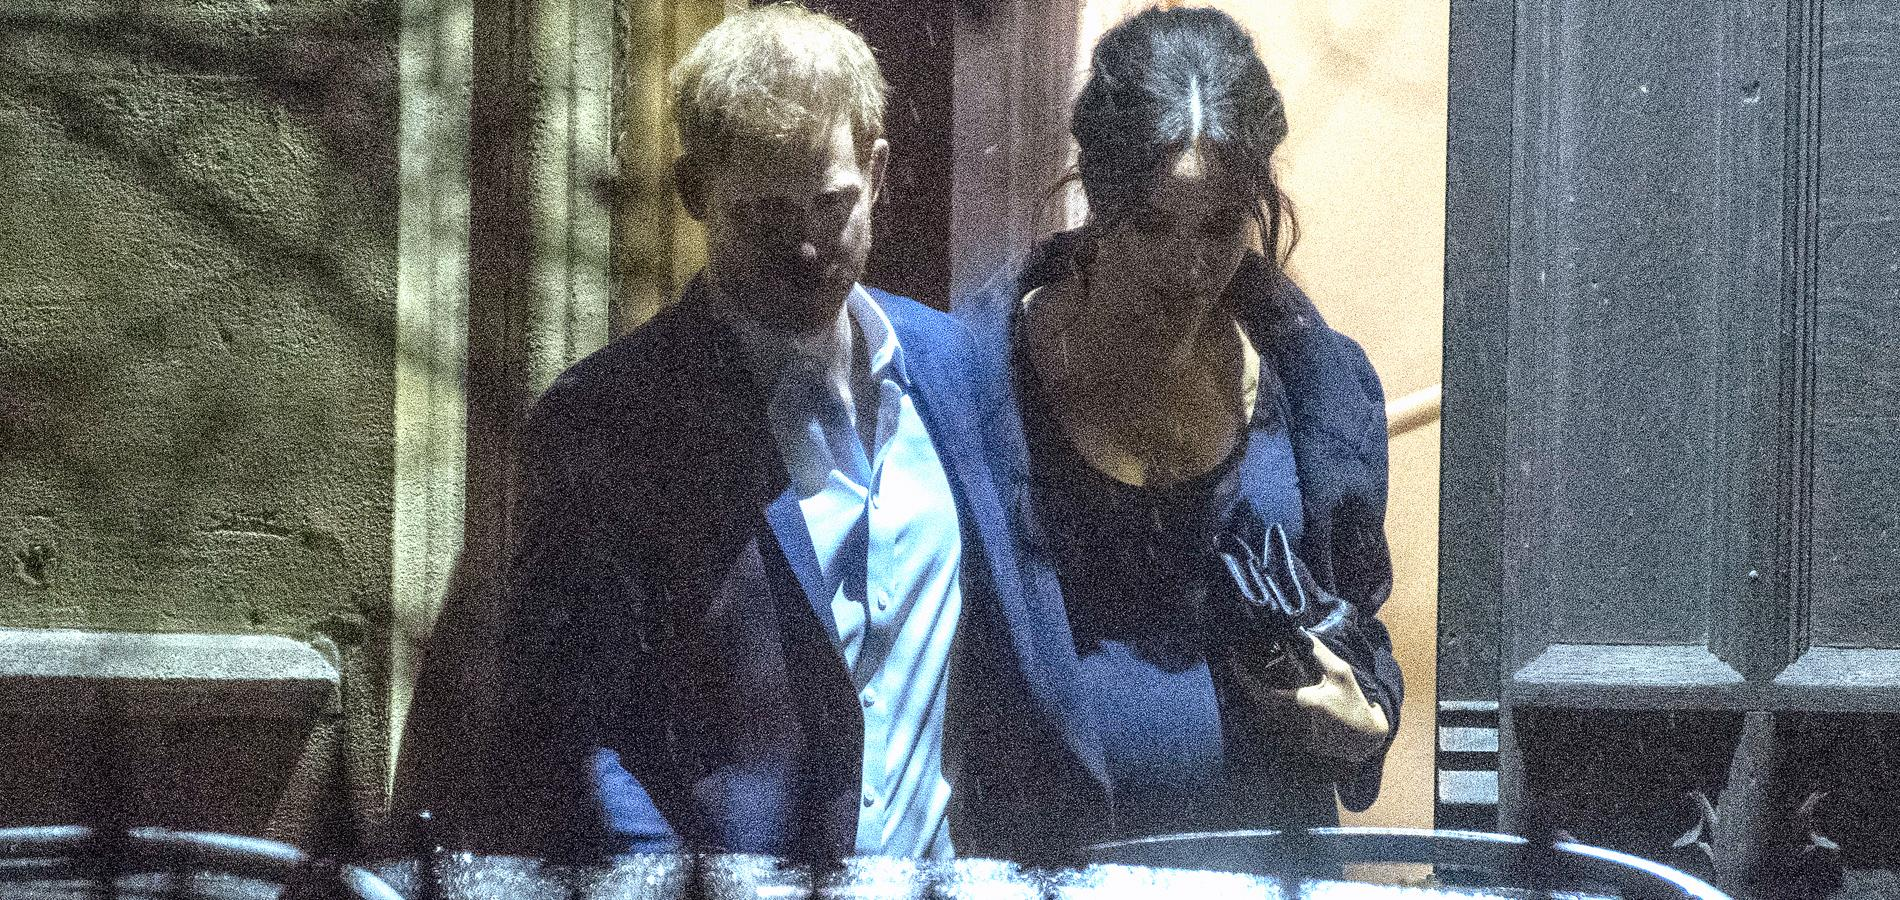 En photo, Meghan Markle et son ventre rond